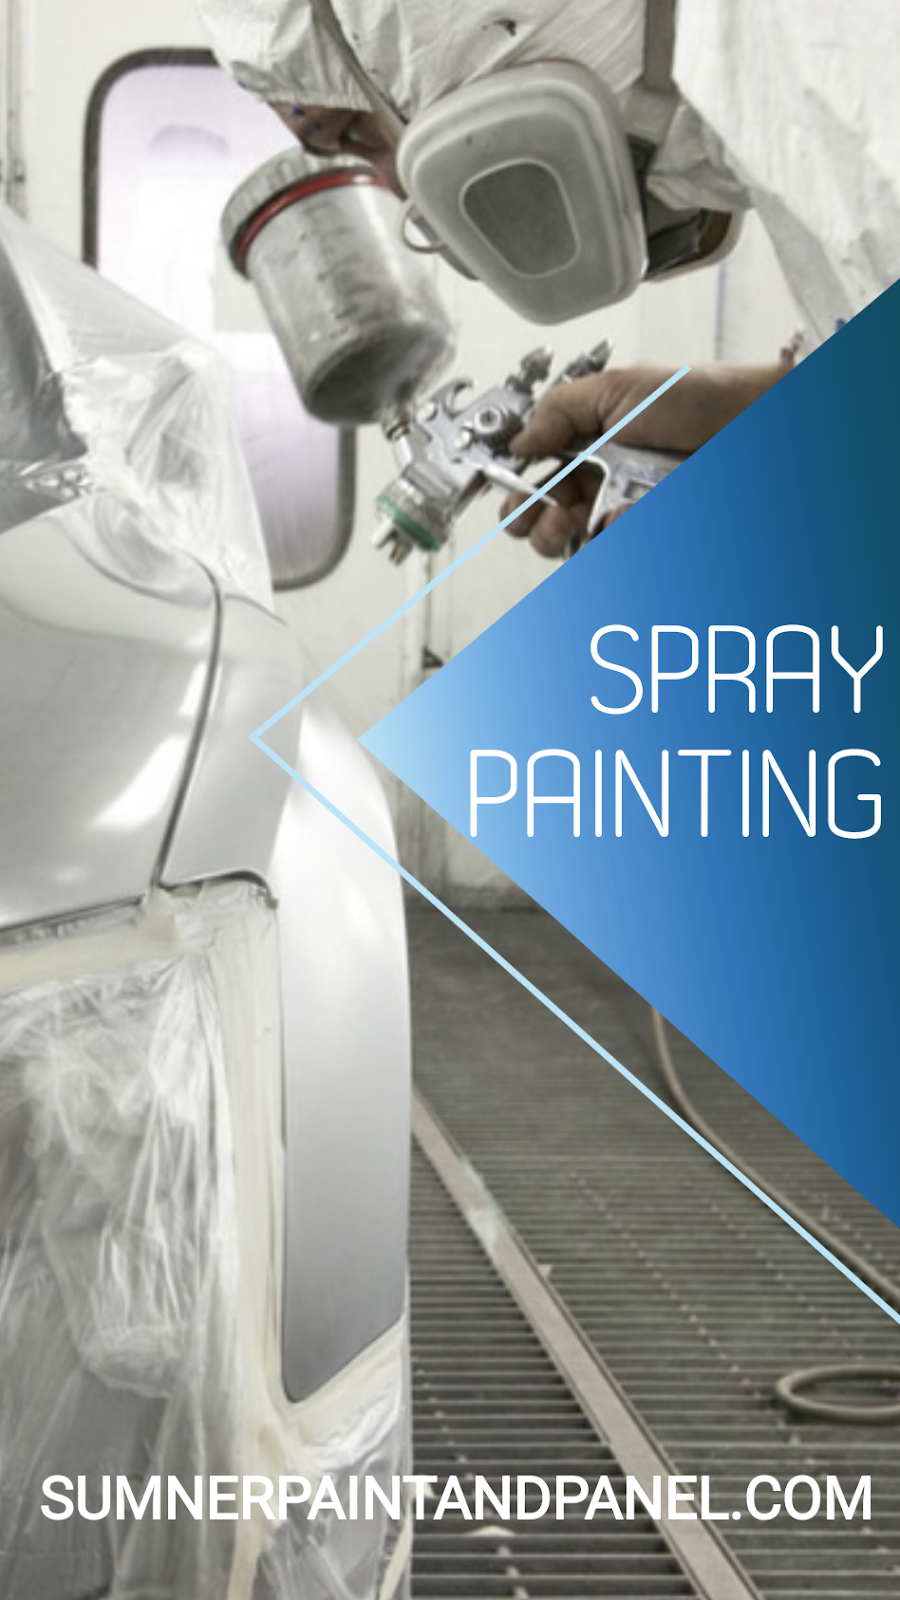 Sumner Paint & Panel | car repair | 46 McMahon St, Traralgon VIC 3844, Australia | 0351749503 OR +61 3 5174 9503